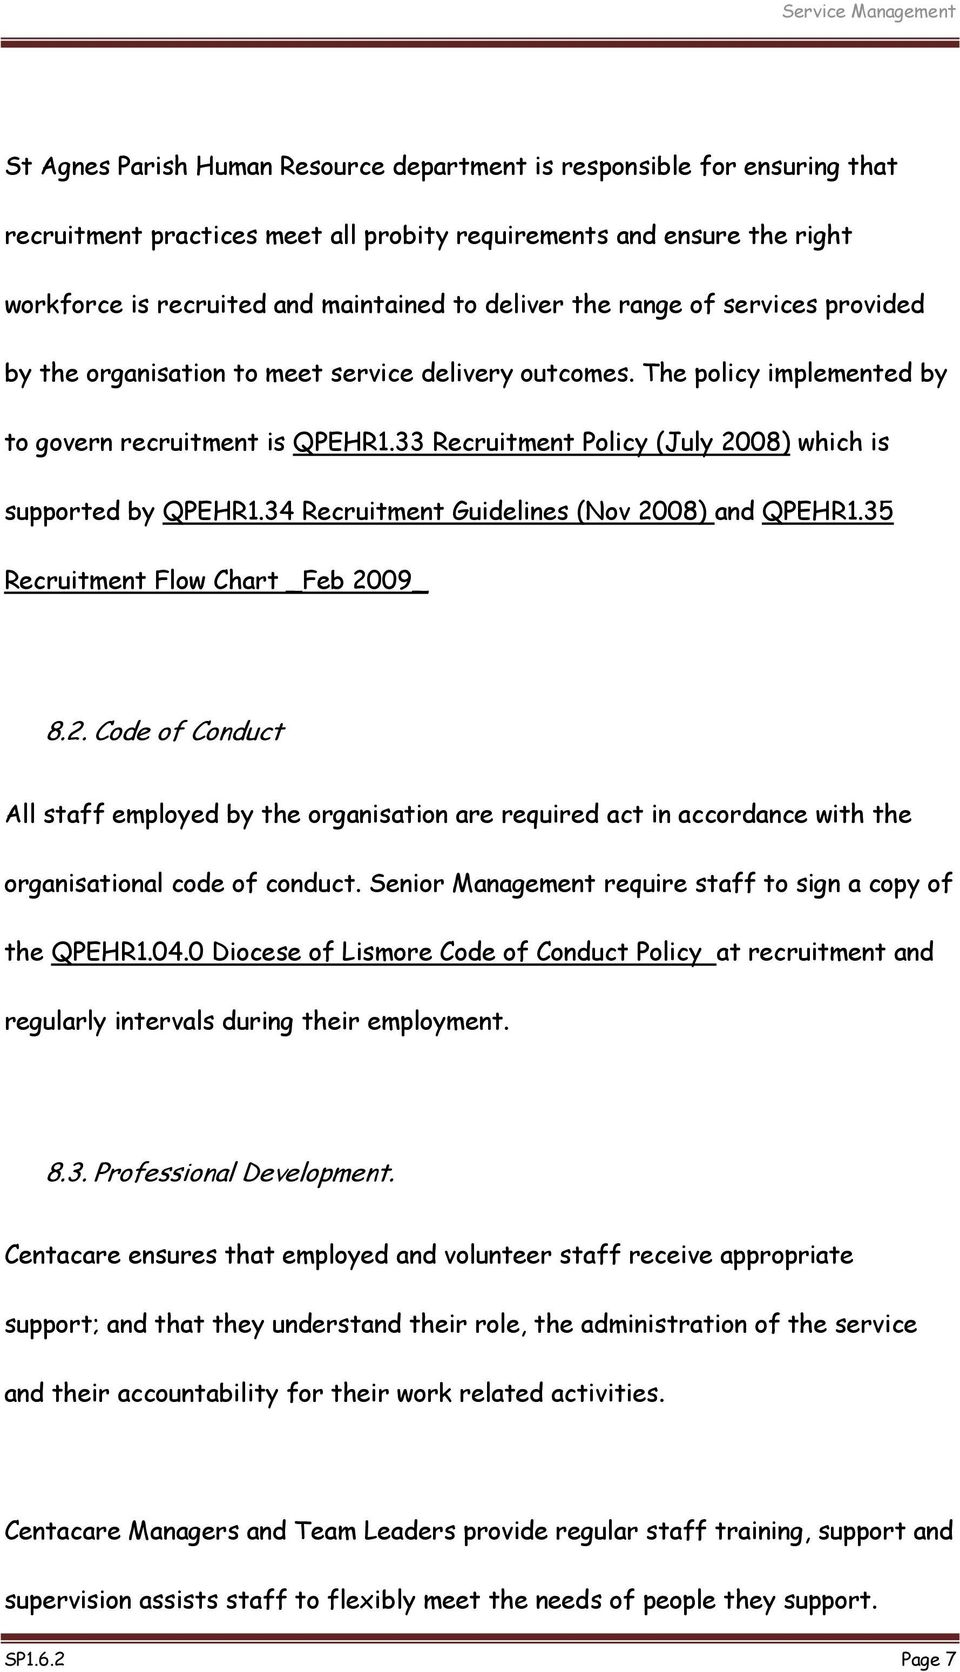 33 Recruitment Policy (July 2008) which is supported by QPEHR1.34 Recruitment Guidelines (Nov 2008) and QPEHR1.35 Recruitment Flow Chart _Feb 2009_ 8.2. Code of Conduct All staff employed by the organisation are required act in accordance with the organisational code of conduct.